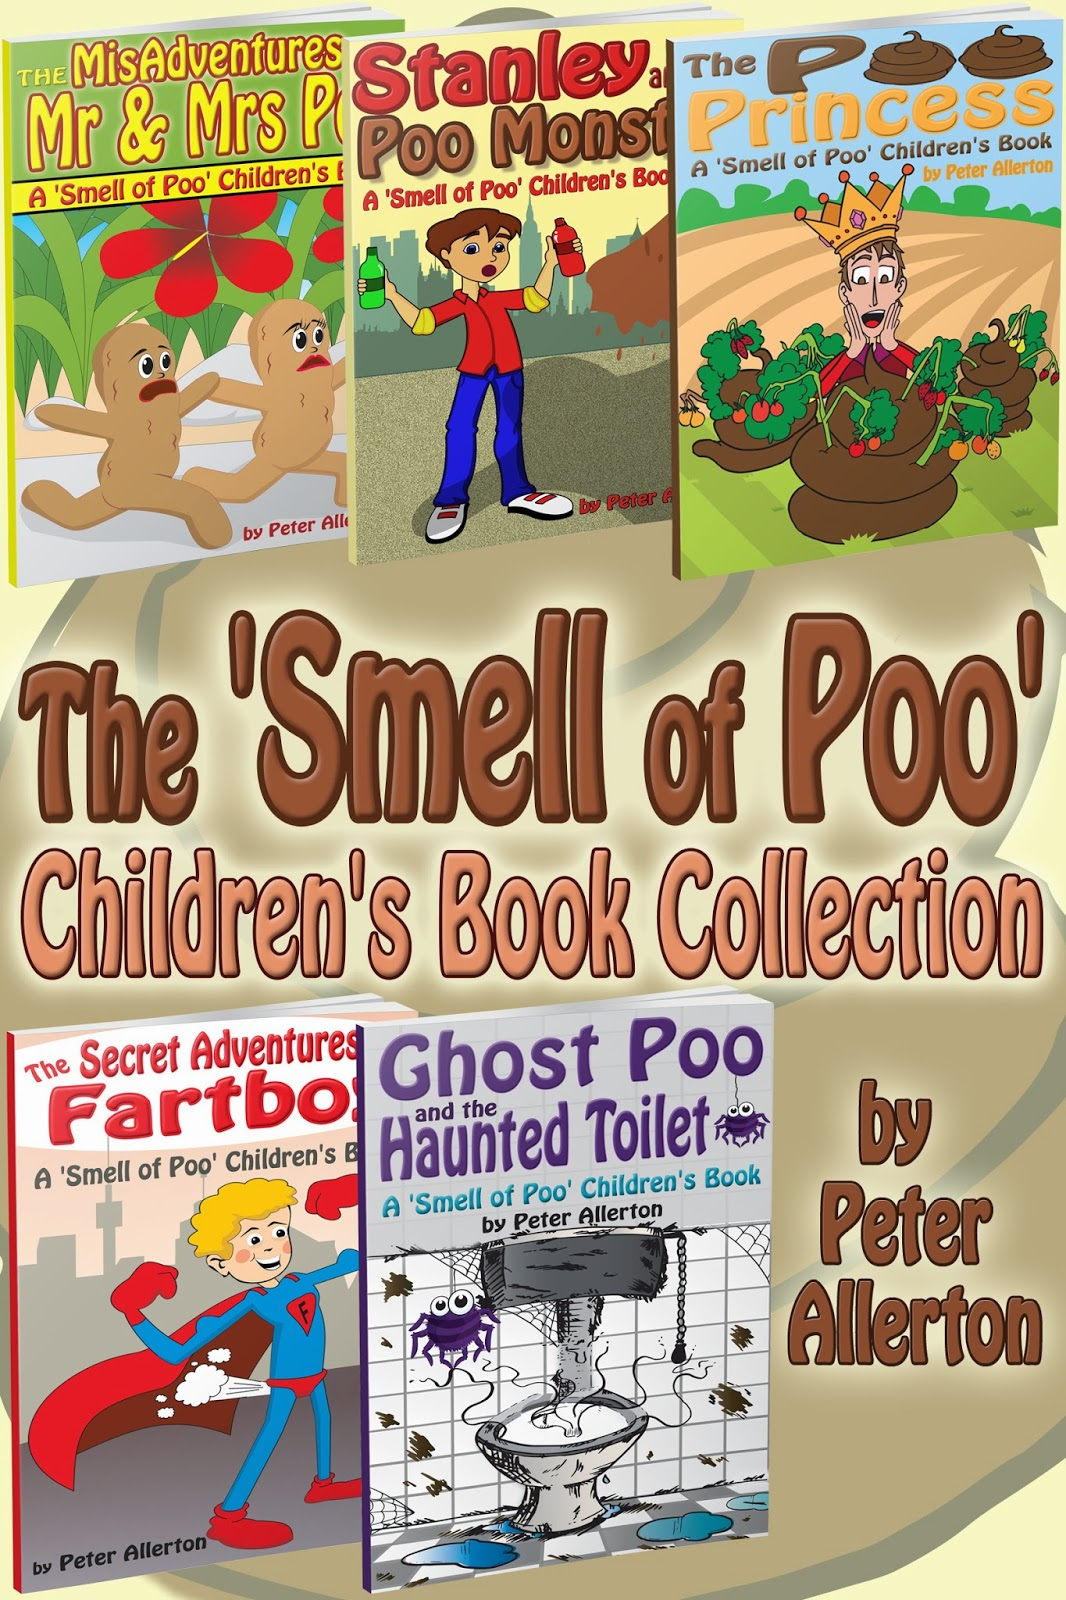 smell poo children's story book print